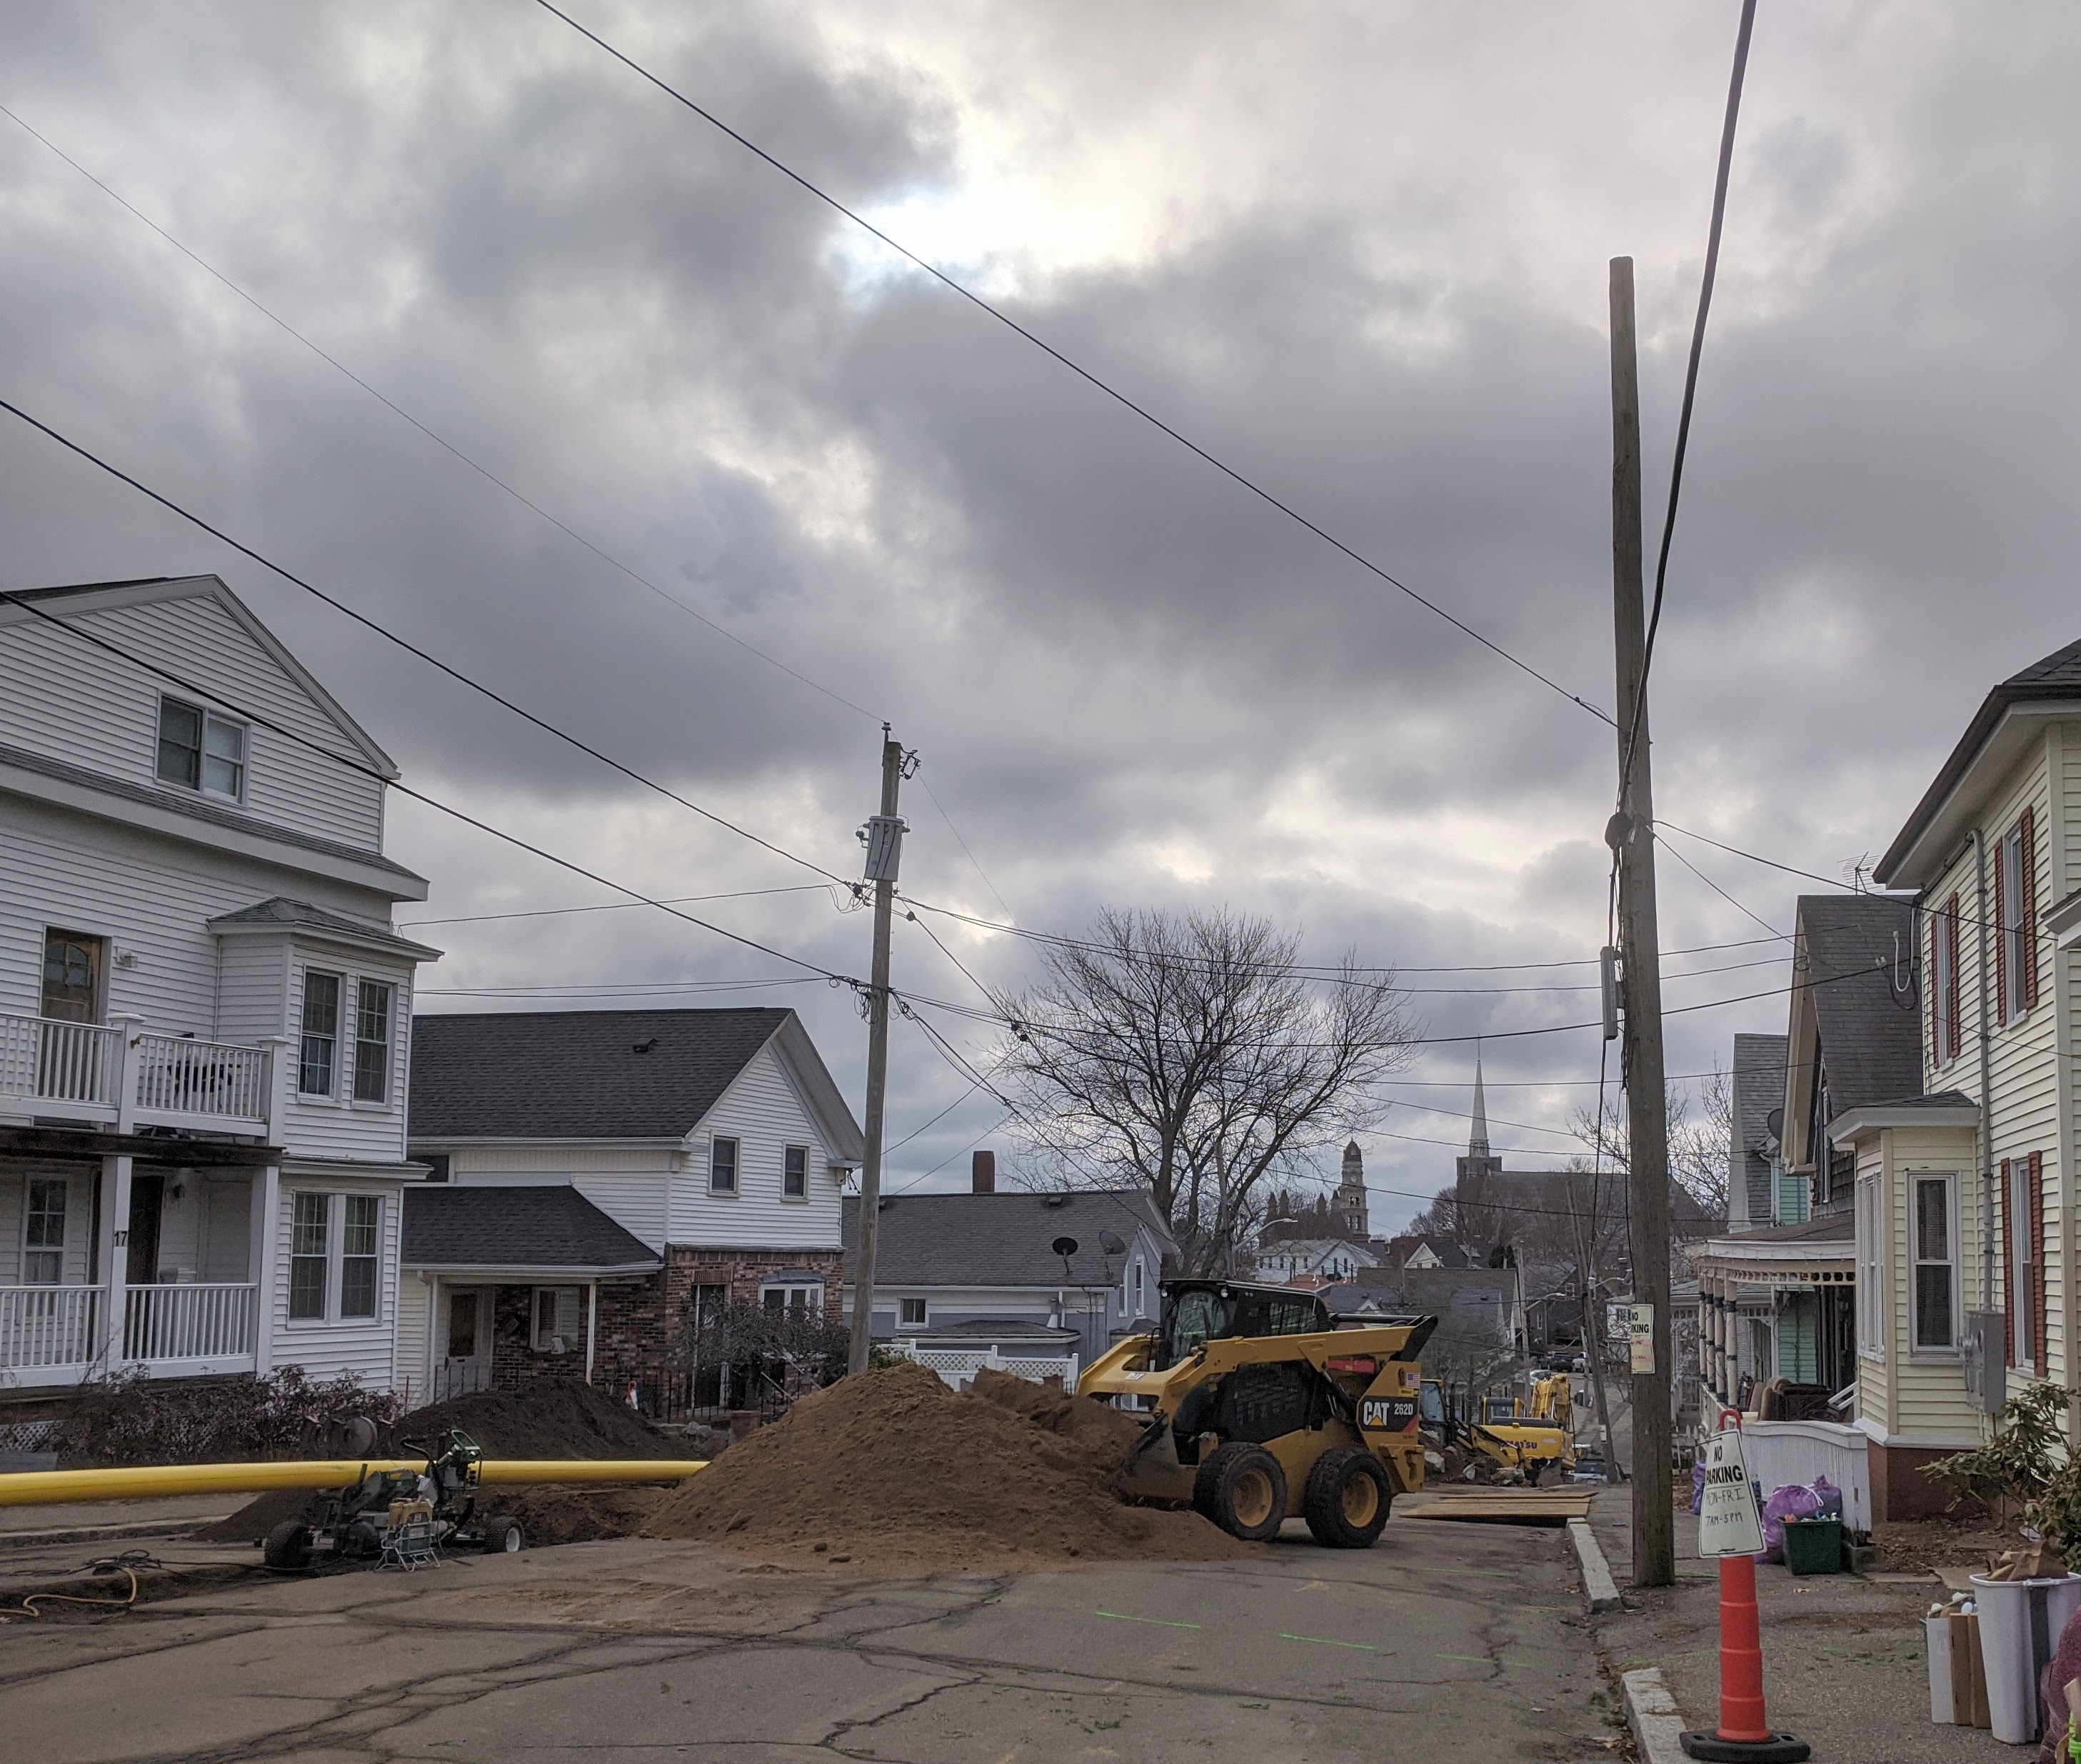 view down Millet St. Gloucester MA__thanks to Mayor, DPW getting $ past finish line _3 million all grant funded_ MassWorks_ infrastructure improvements_photo © c ryan 2020 Jan 14.jpg